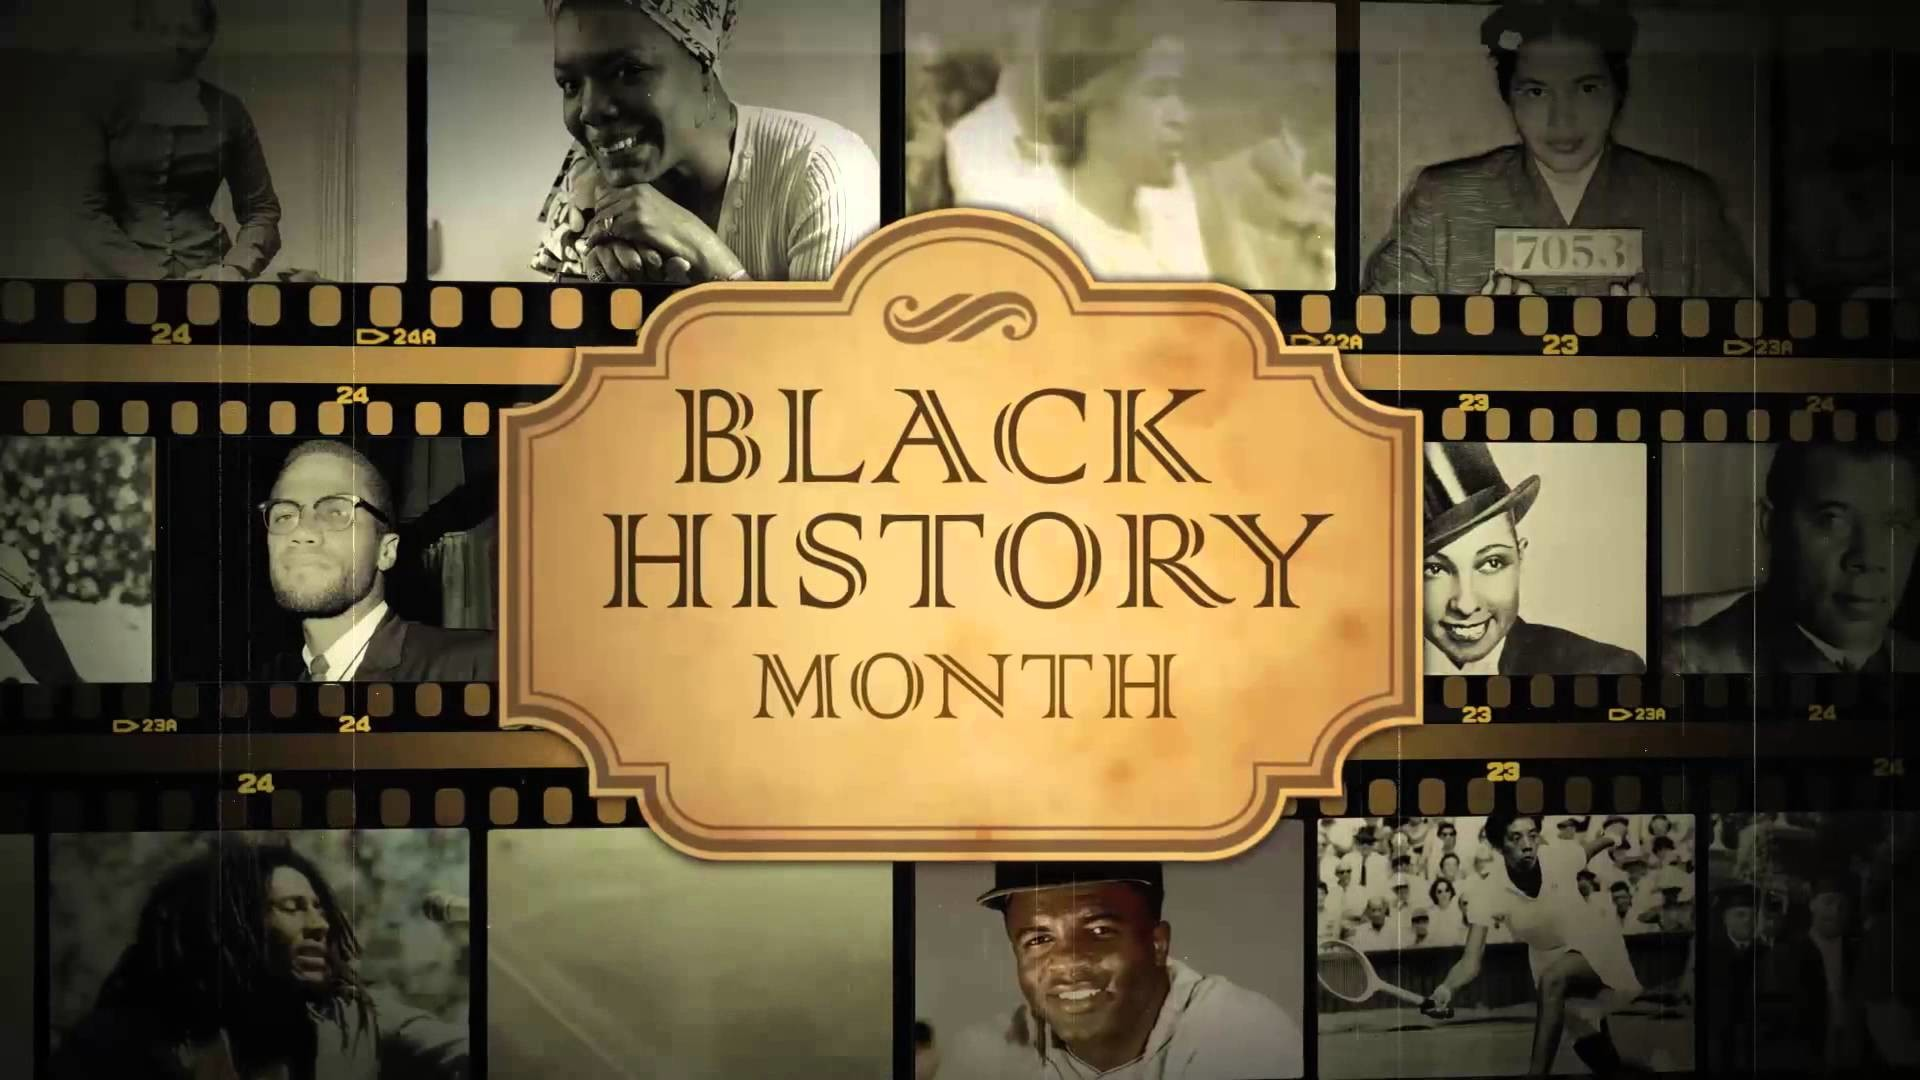 Res: 1920x1080, Black History Month 2015 Scagliotti - YouTube